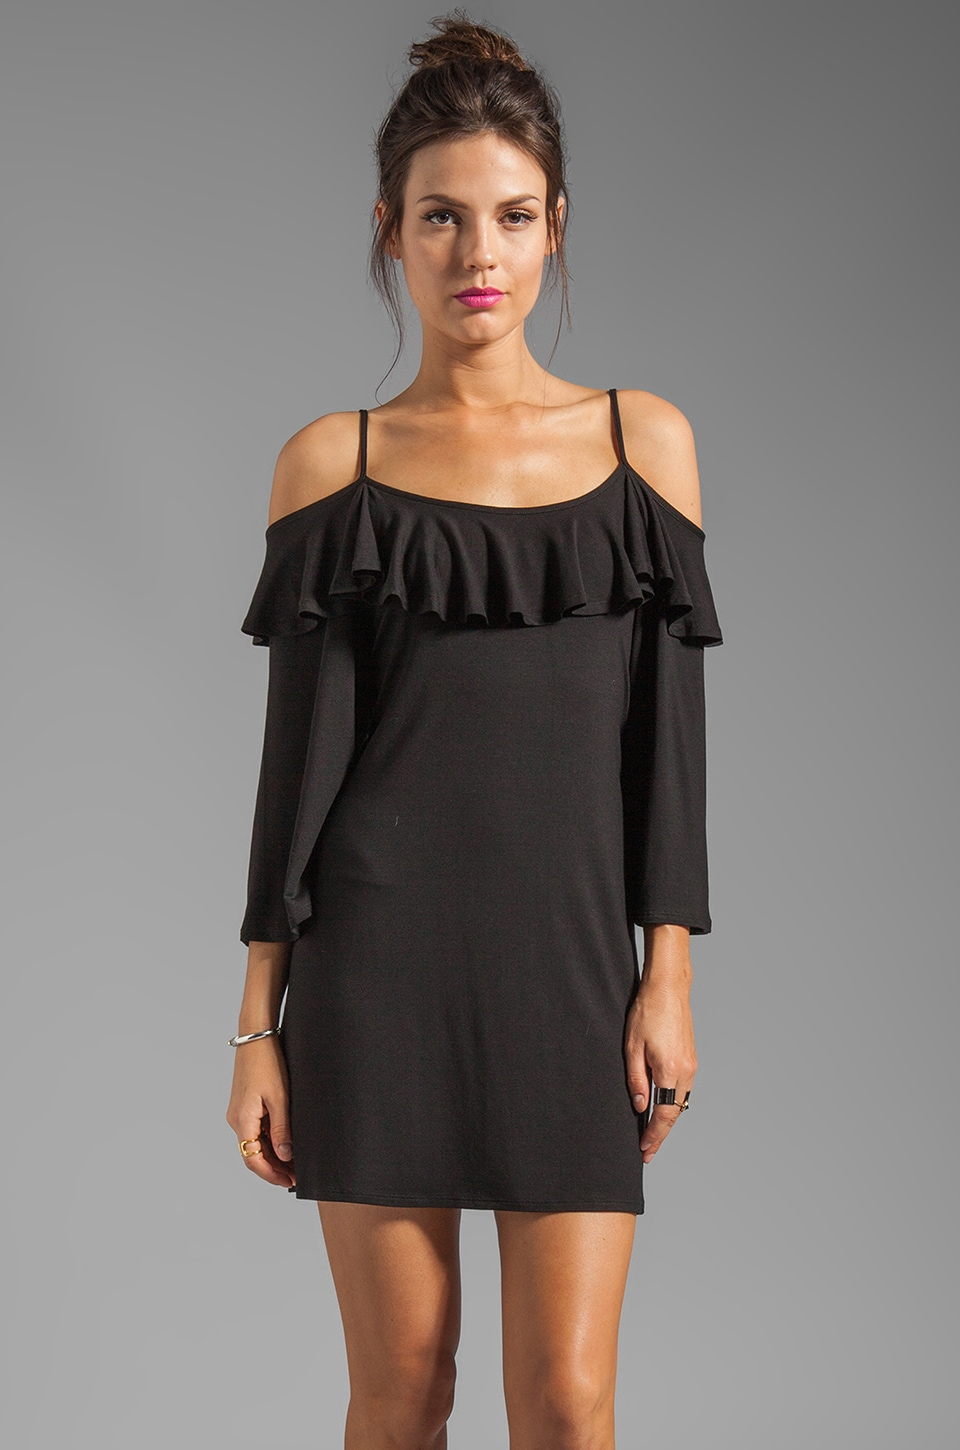 James & Joy Natalie Open Shoulder Dress in Black